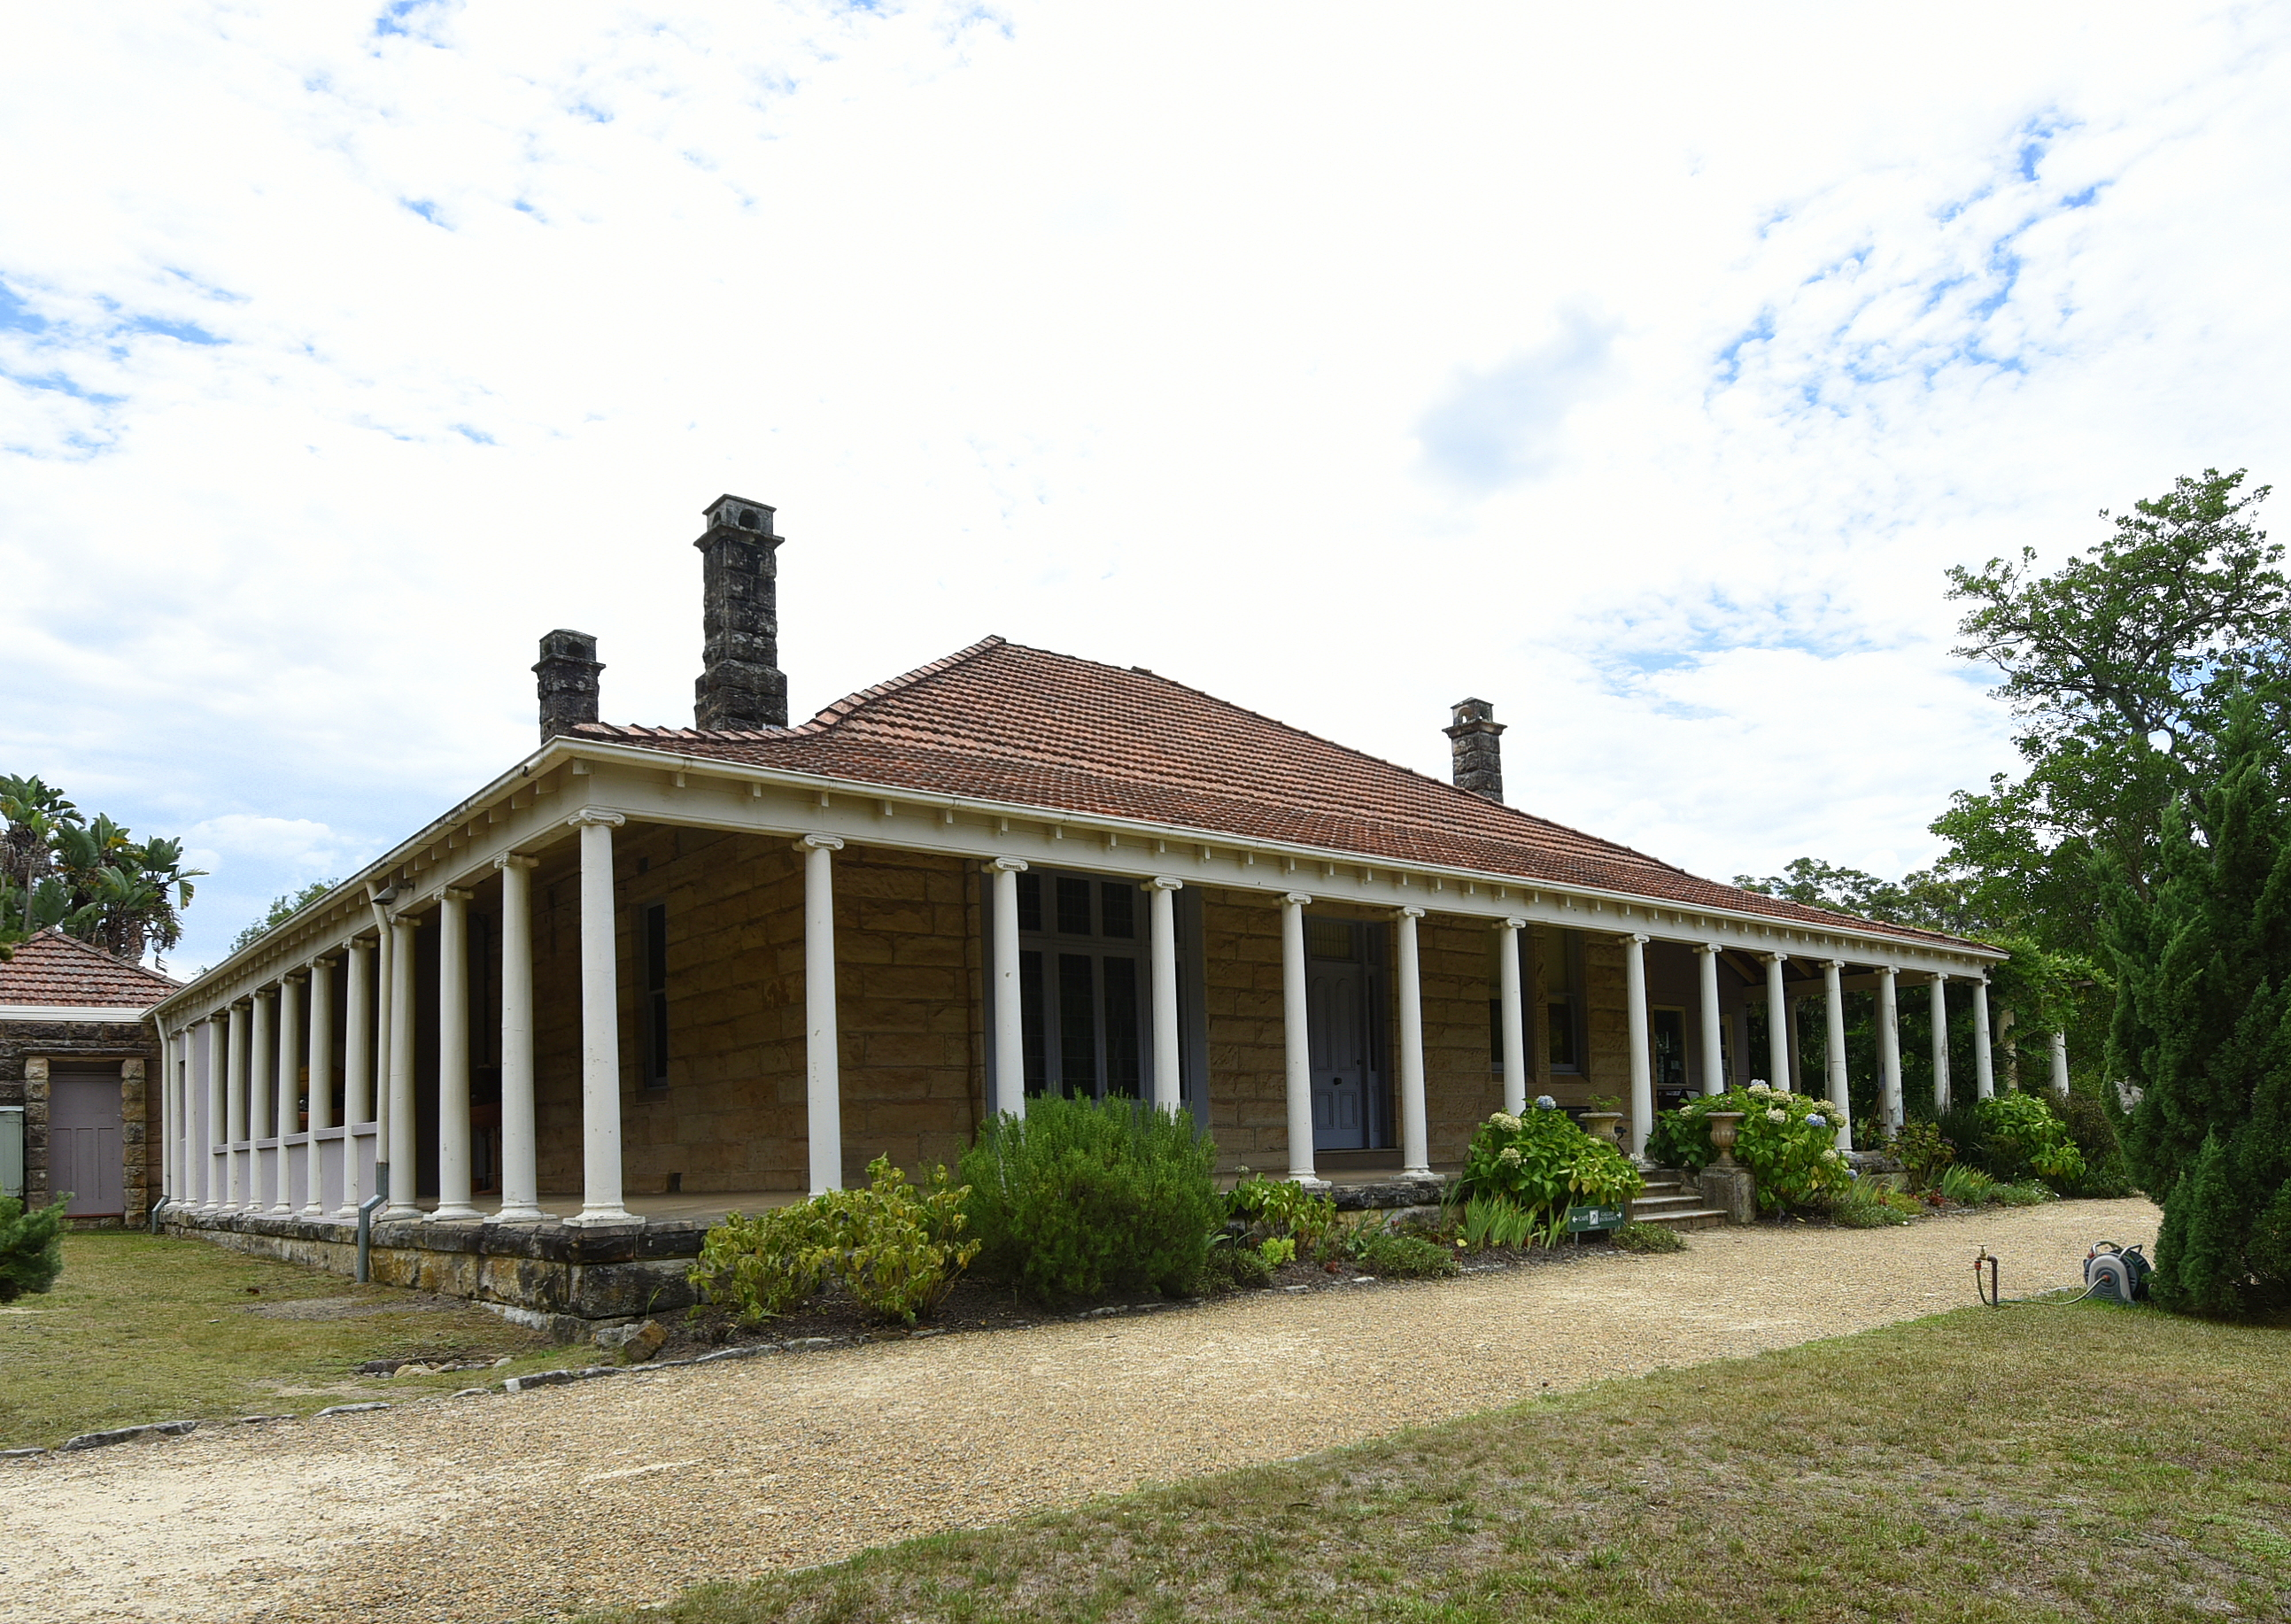 Norman Lindsay Gallery and Museum